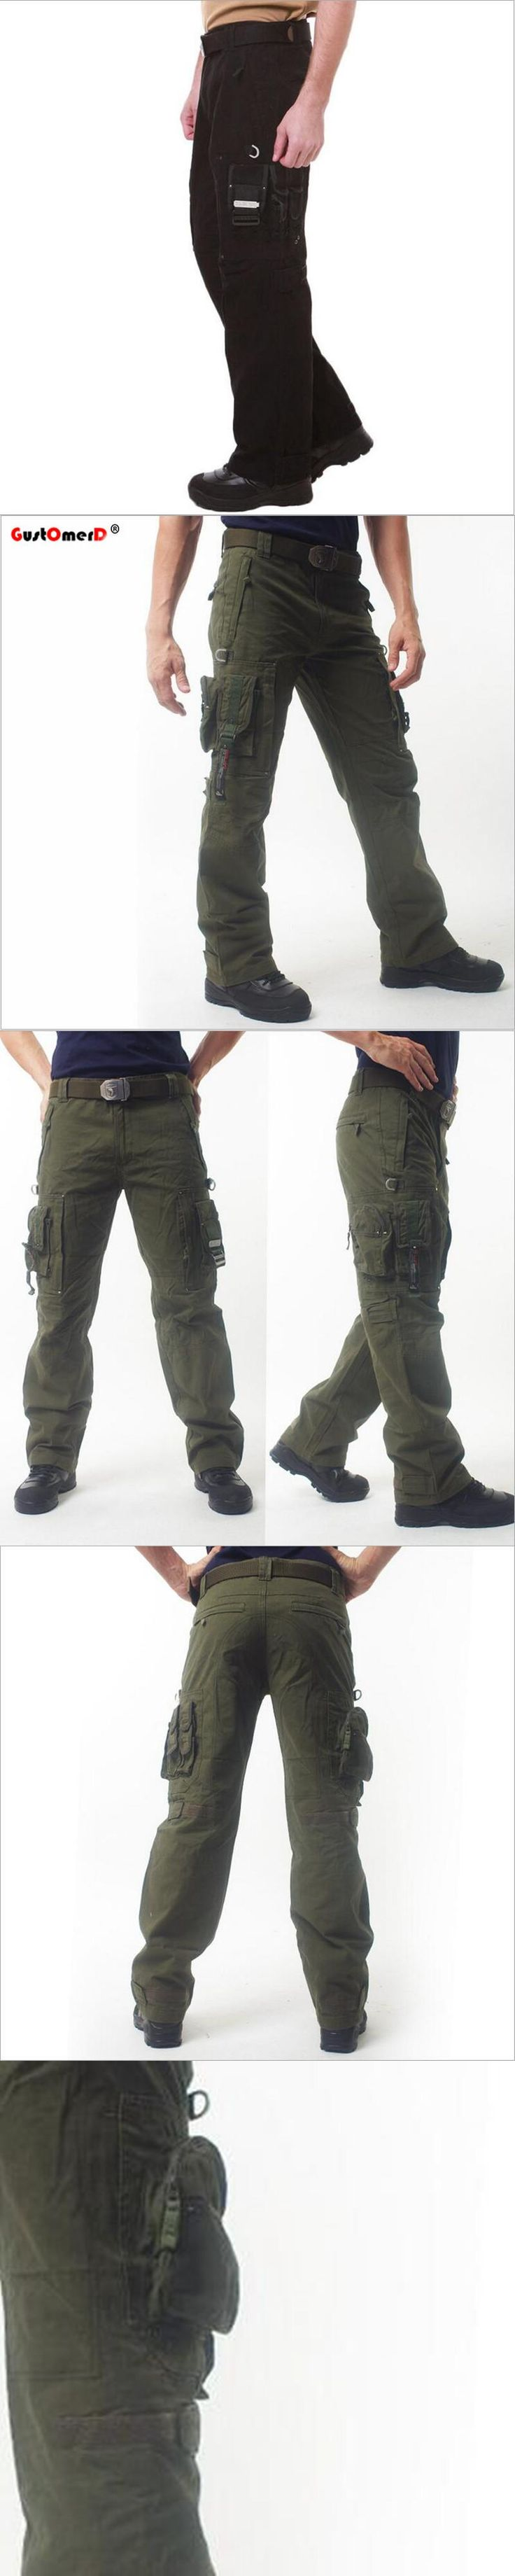 GustOmerD New Men Tactical Cargo Pants Men Cotton Army Military Pants Multi-pocket Paintball Militar Casual Trousers